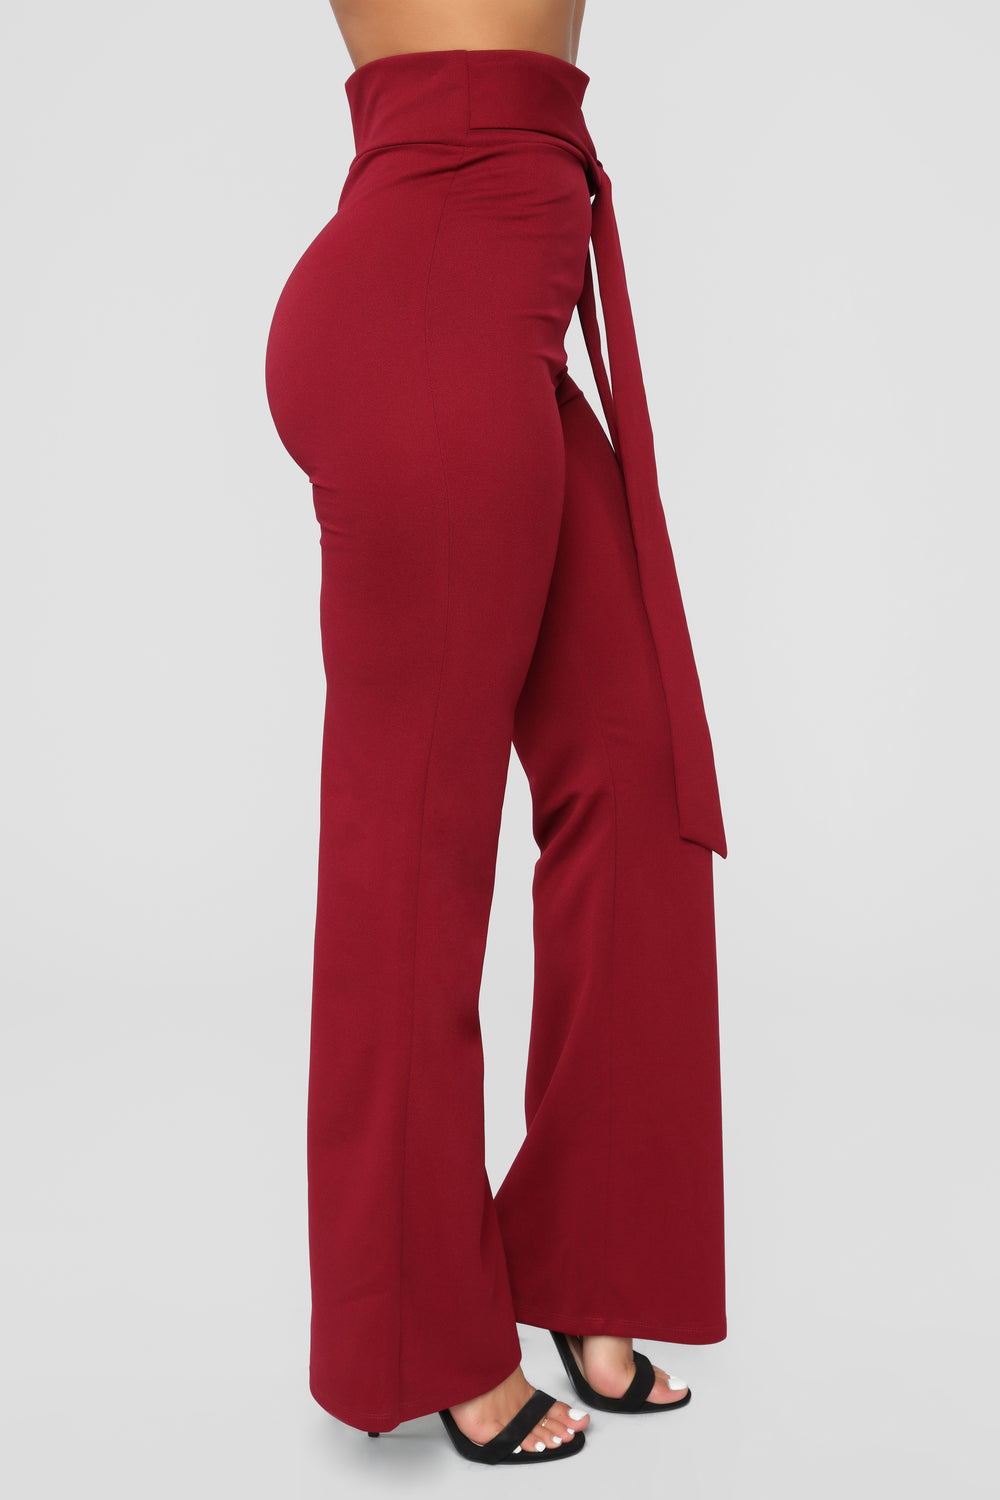 Meltin' Hearts Pants - Burgundy